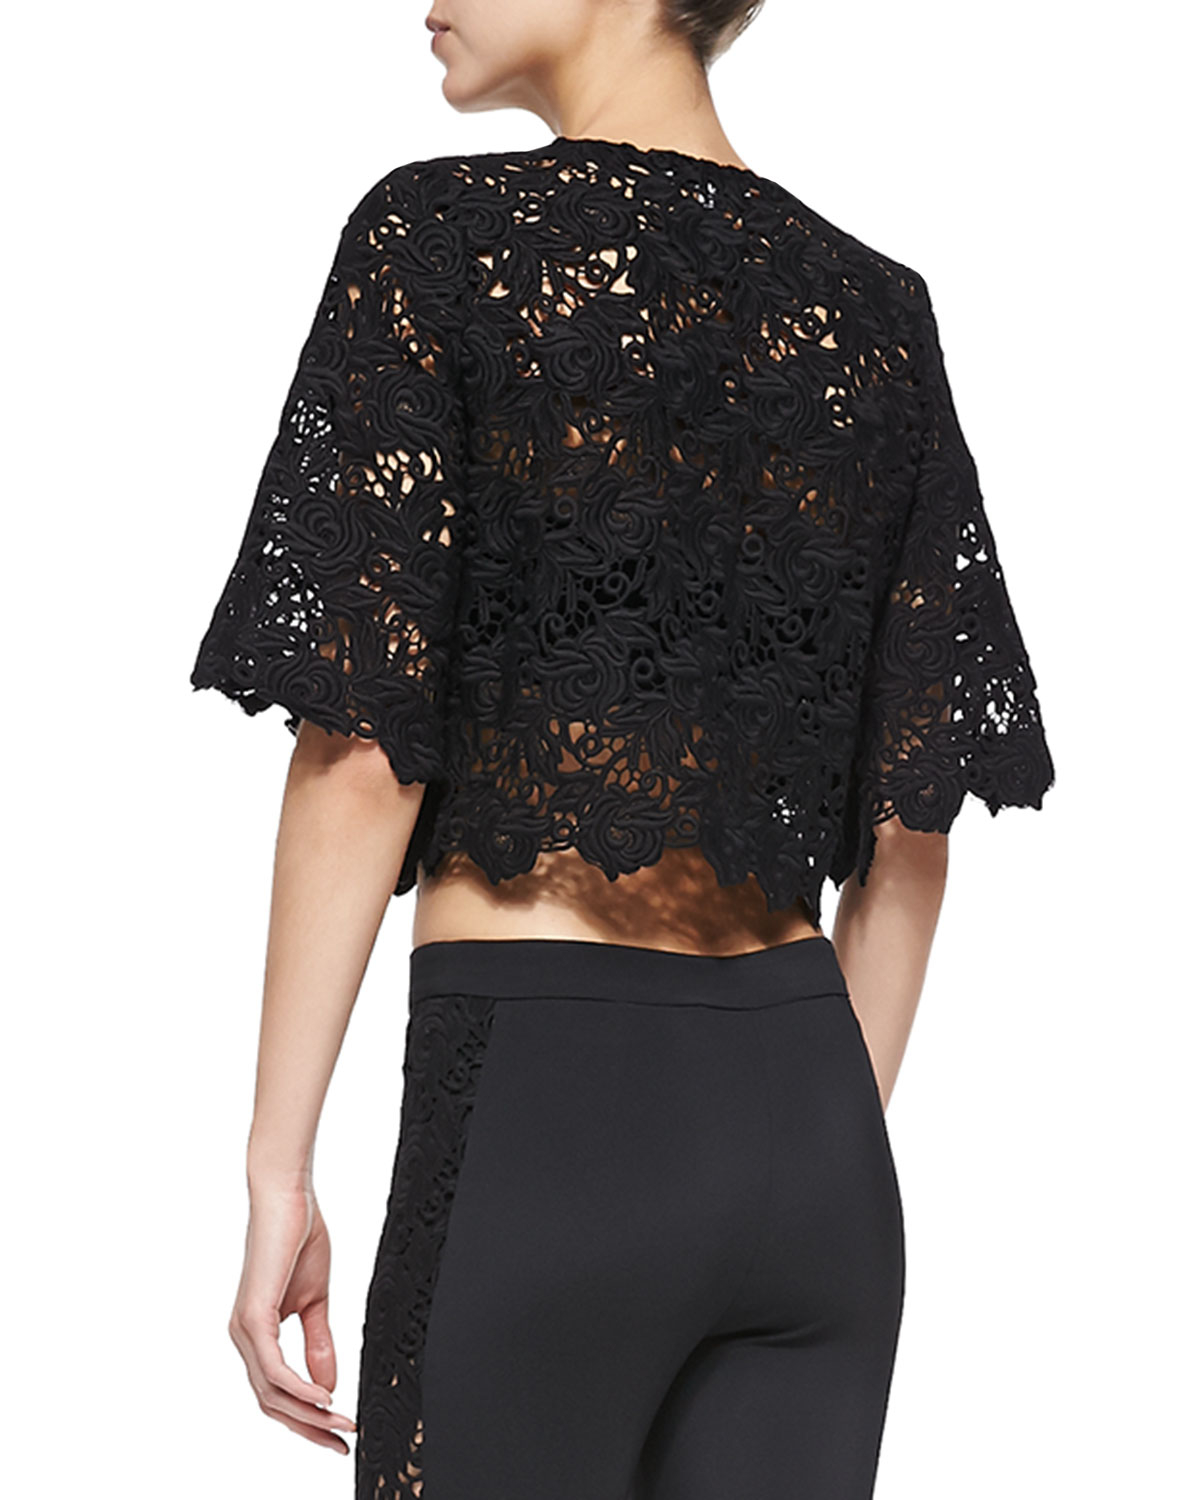 548d8a62247 Alexis Sicily Half-Sleeve Lace Crop Top in Black - Lyst